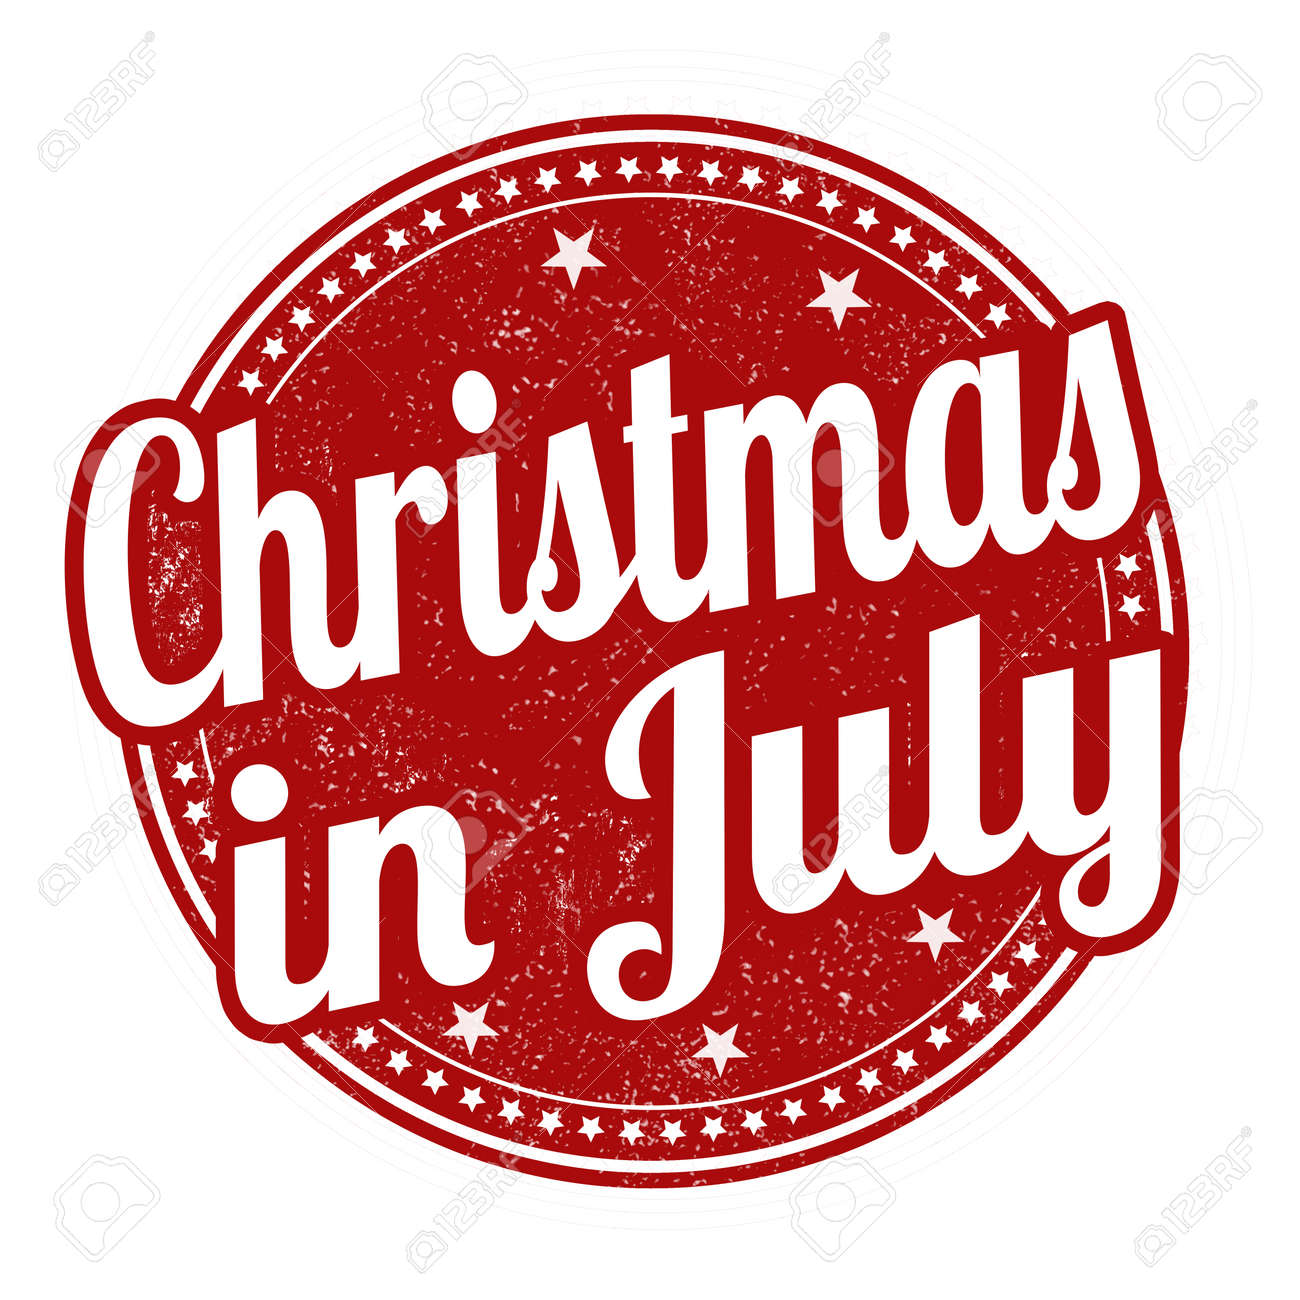 Christmas In July Royalty Free Images.Christmas In July Grunge Rubber Stamp On White Background Vector